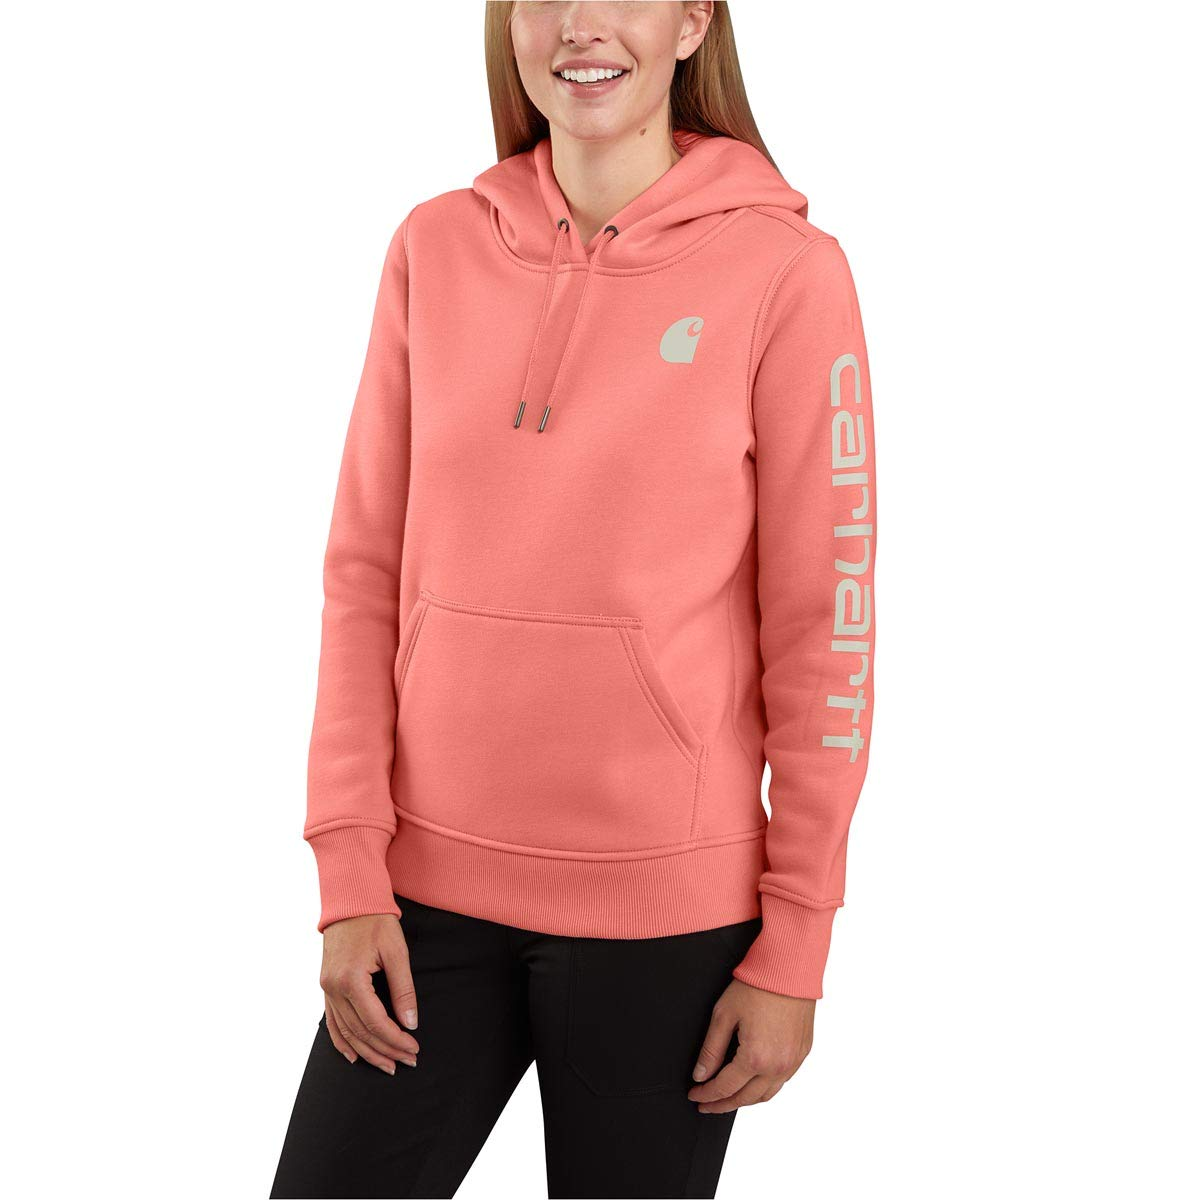 Carhartt Women's Regular Clarksburg Sleeve Logo Hooded Sweatshirt